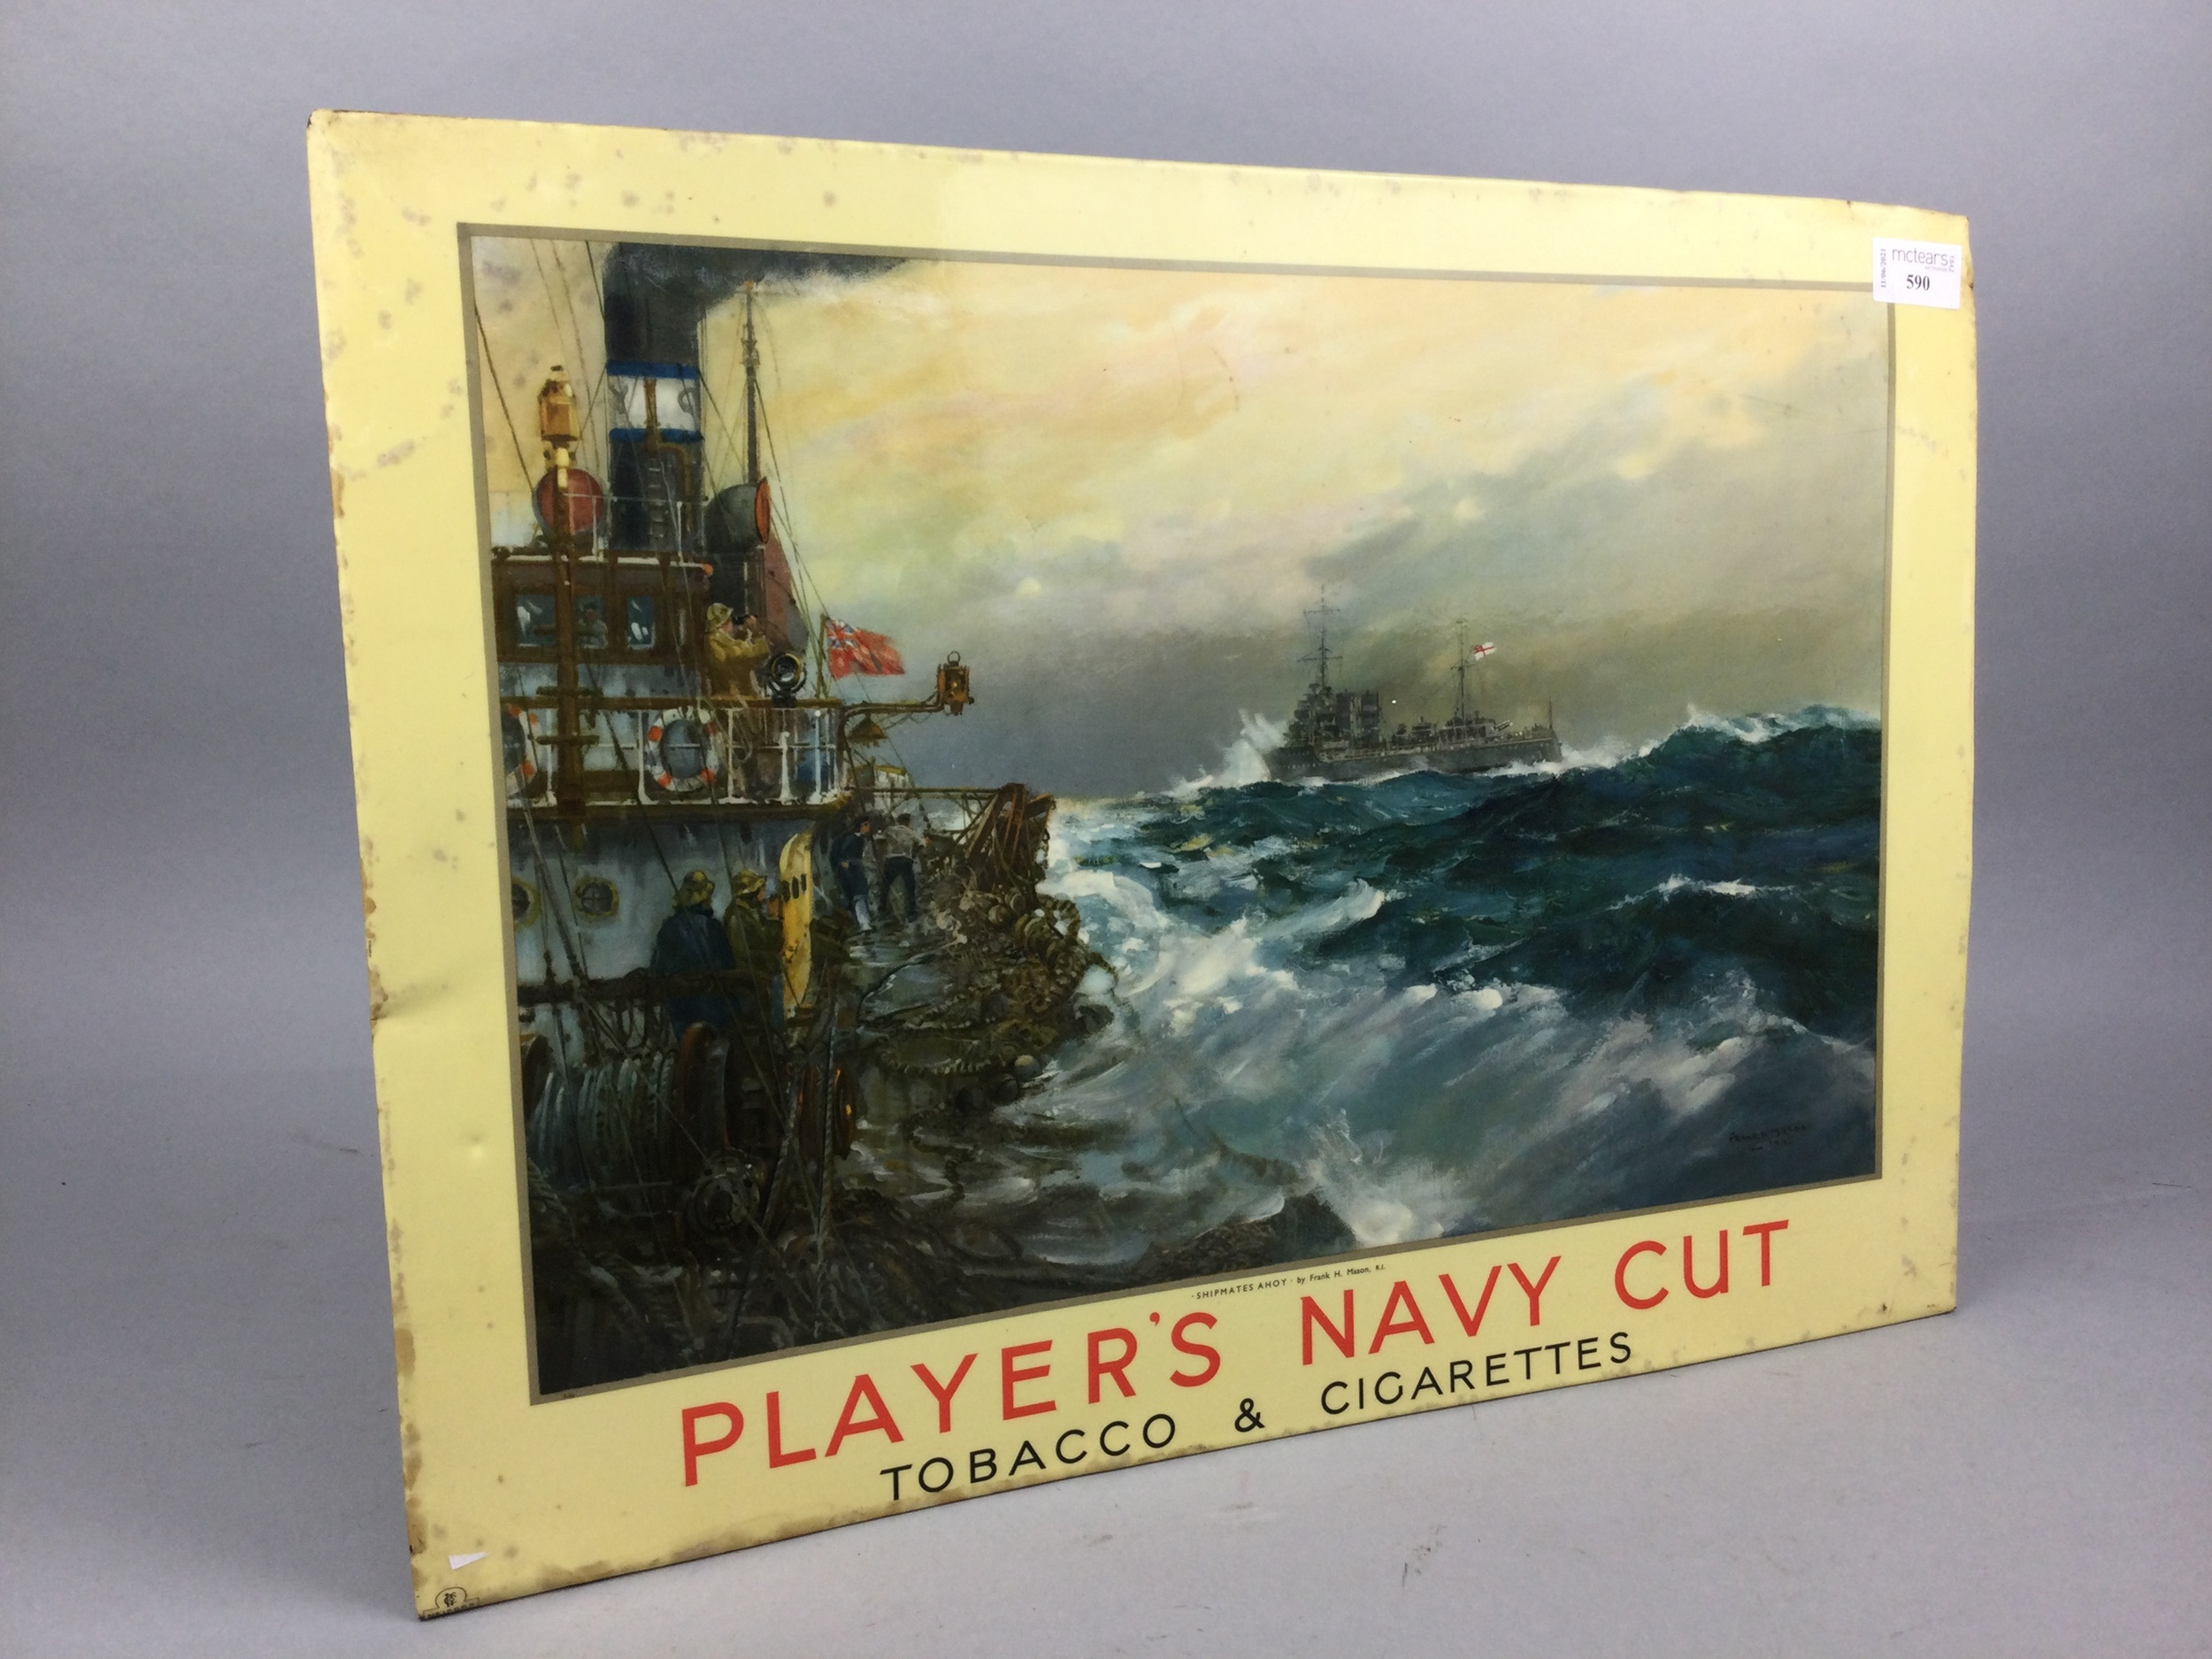 A PLAYERS NAVY CUT ADVERTISING SIGN, ALONG WITH TWO PEACOCKS